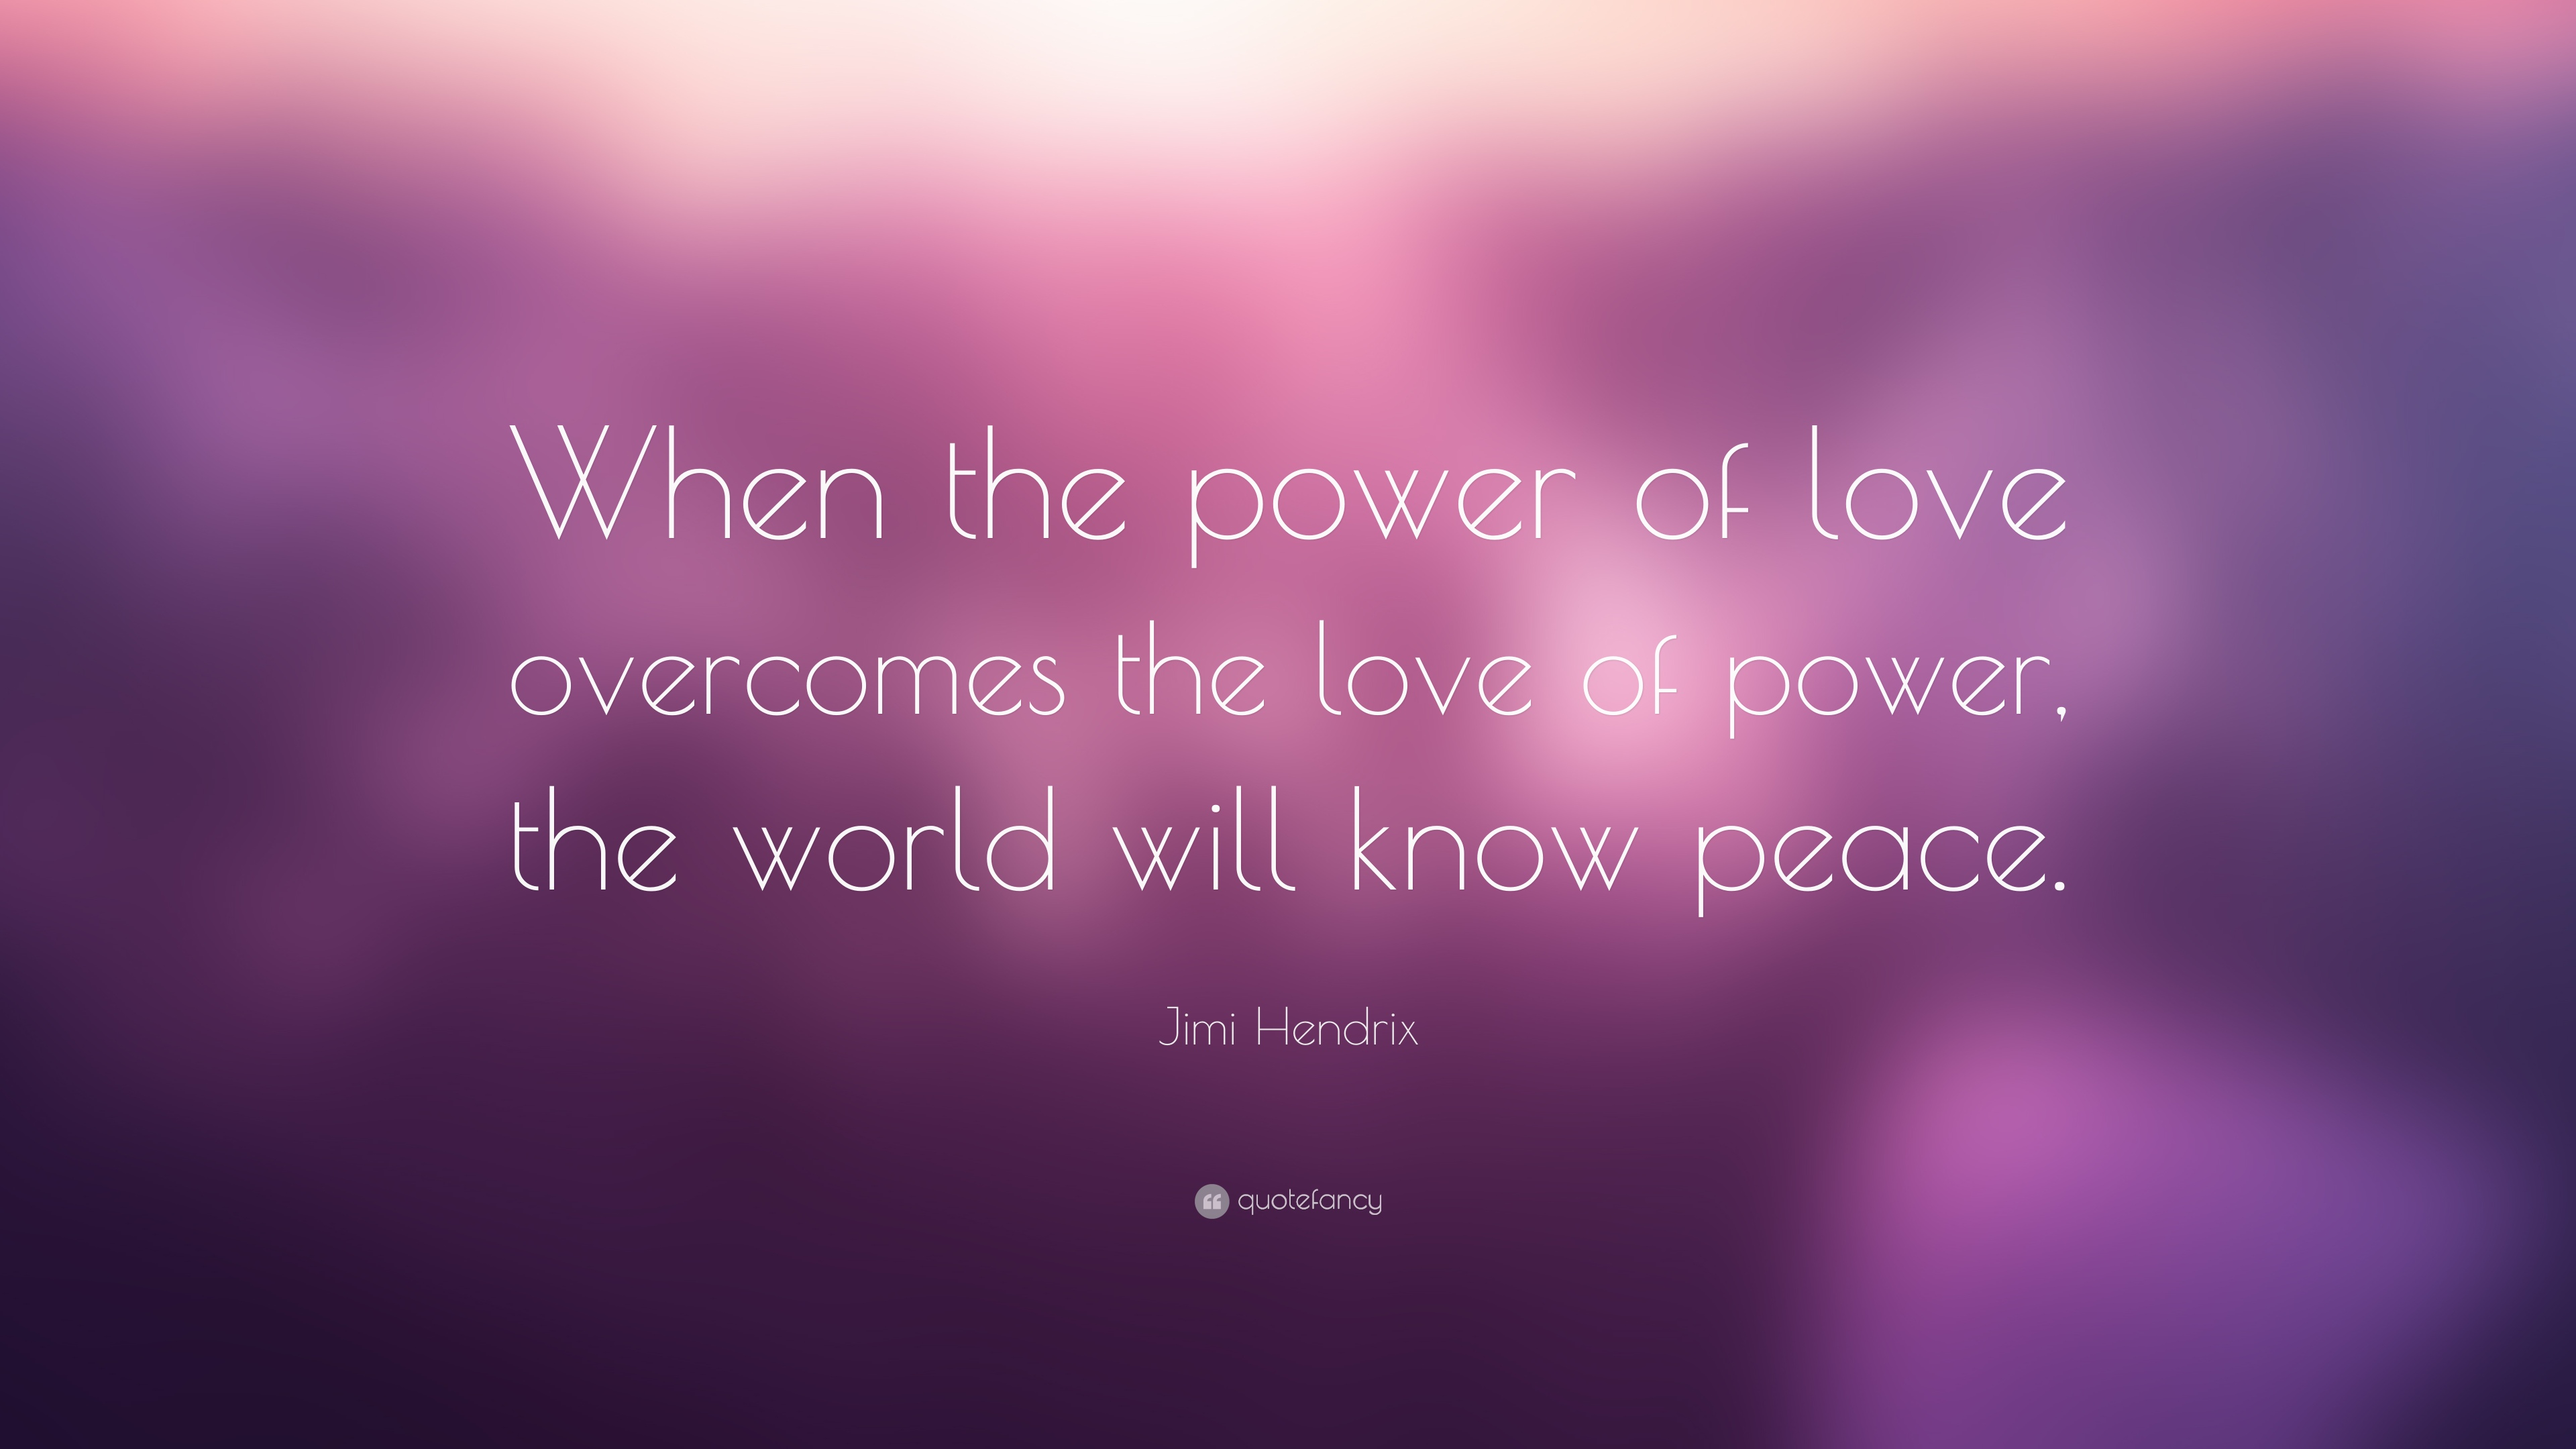 Jimi Hendrix Quote When The Power Of Love Overcomes The